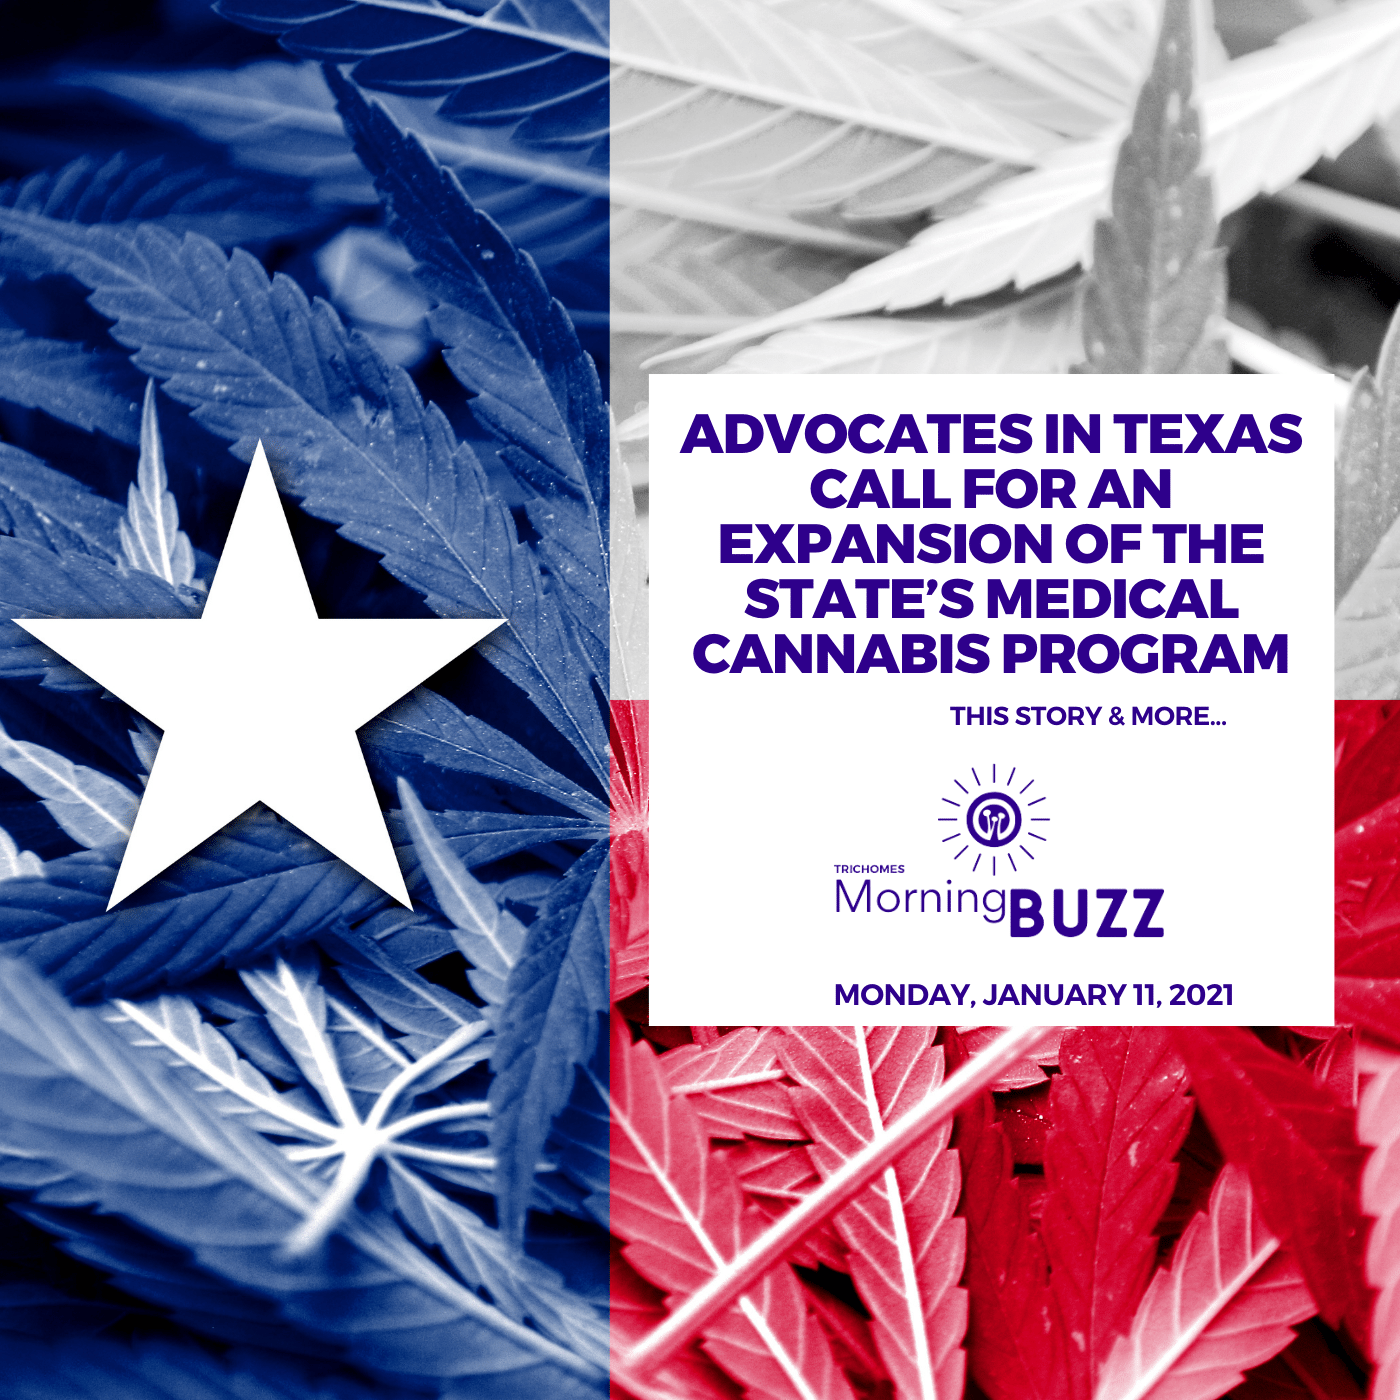 Advocates in Texas Call for an Expansion of the State's Medical Cannabis Program | TRICHOMES Morning Buzz show art